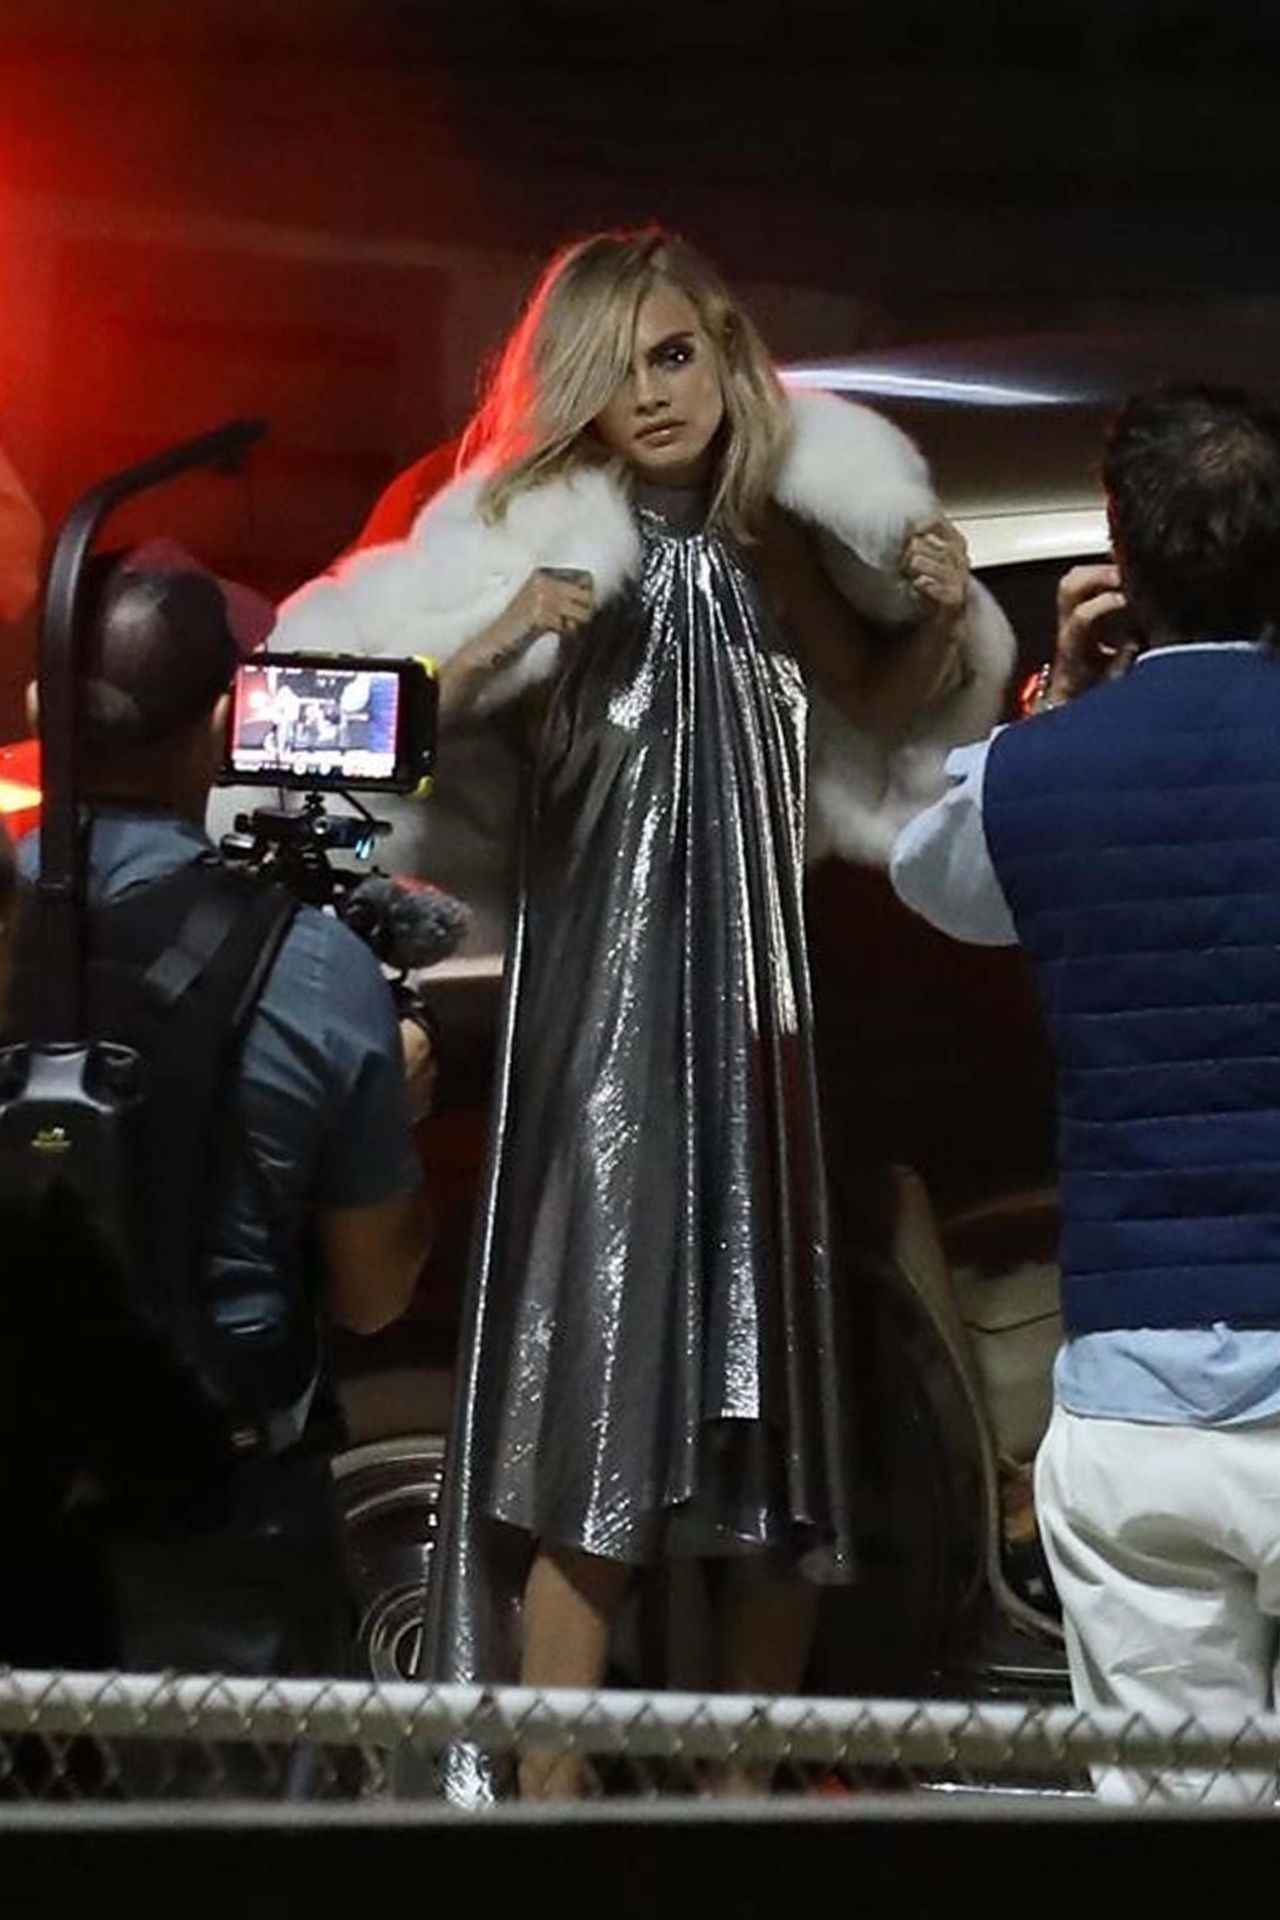 CARA DELEVINGNE on the Set of a Photoshoot in Los Angeles